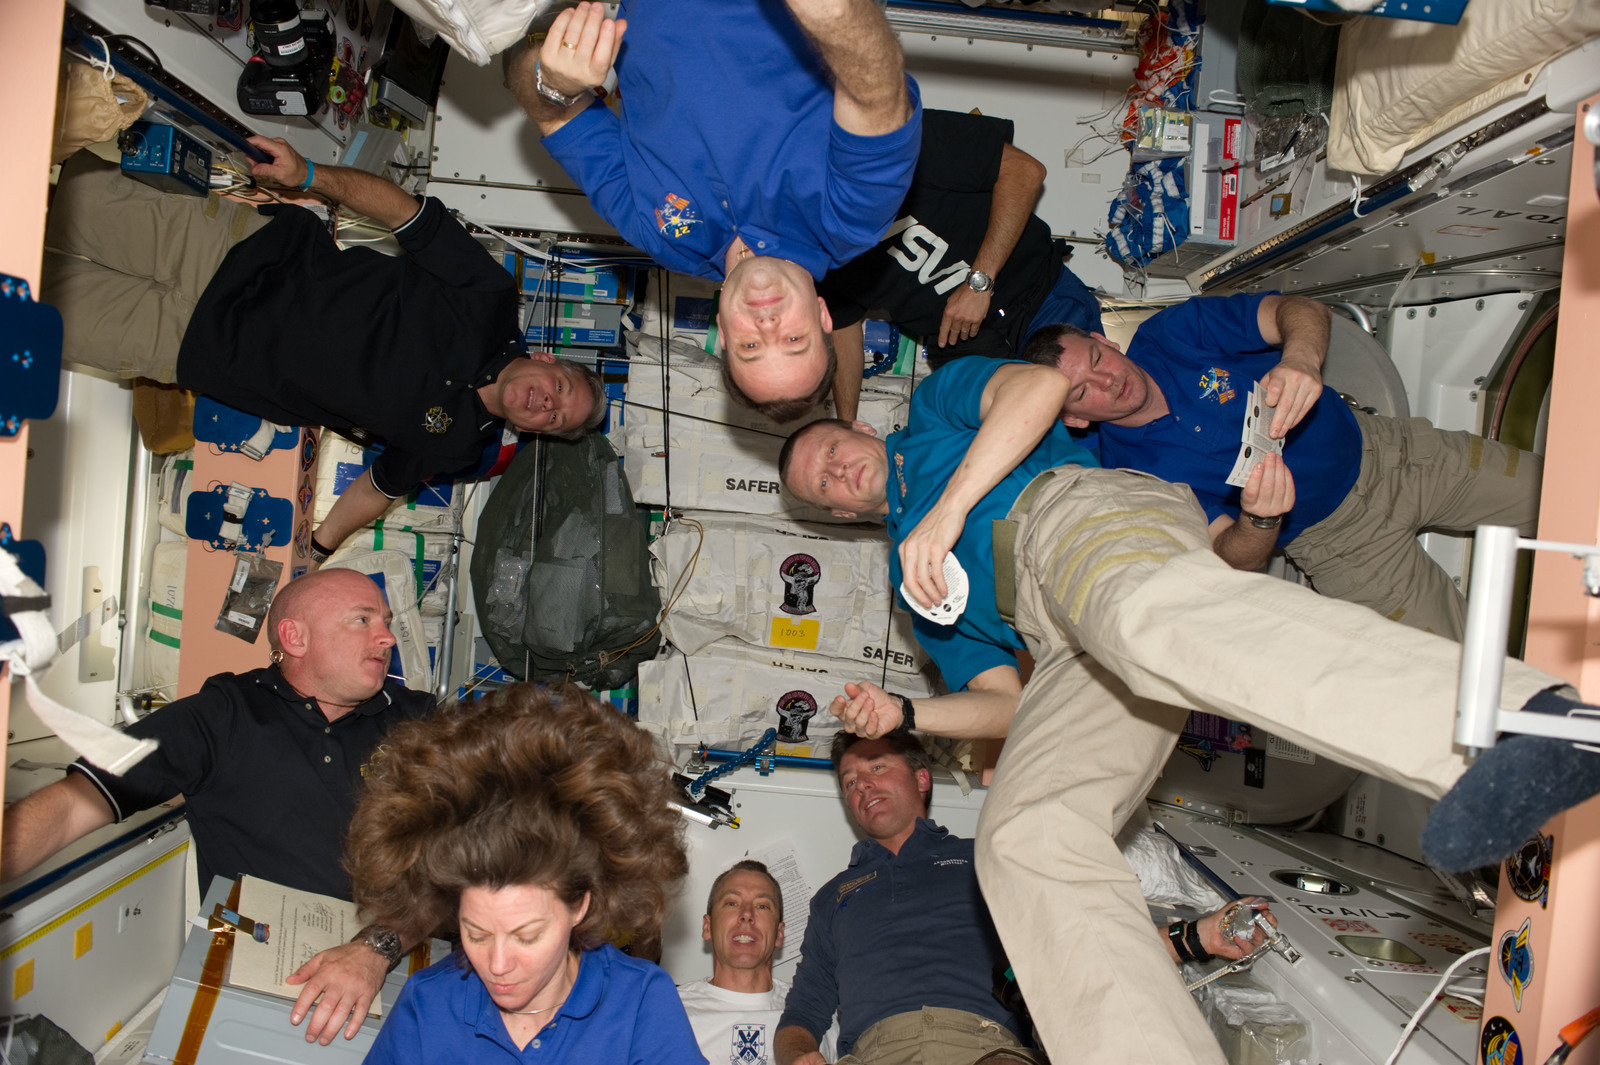 S134E008400 - STS-134 - View of Expedition 27 / STS-134 Crew Members in the Node 1